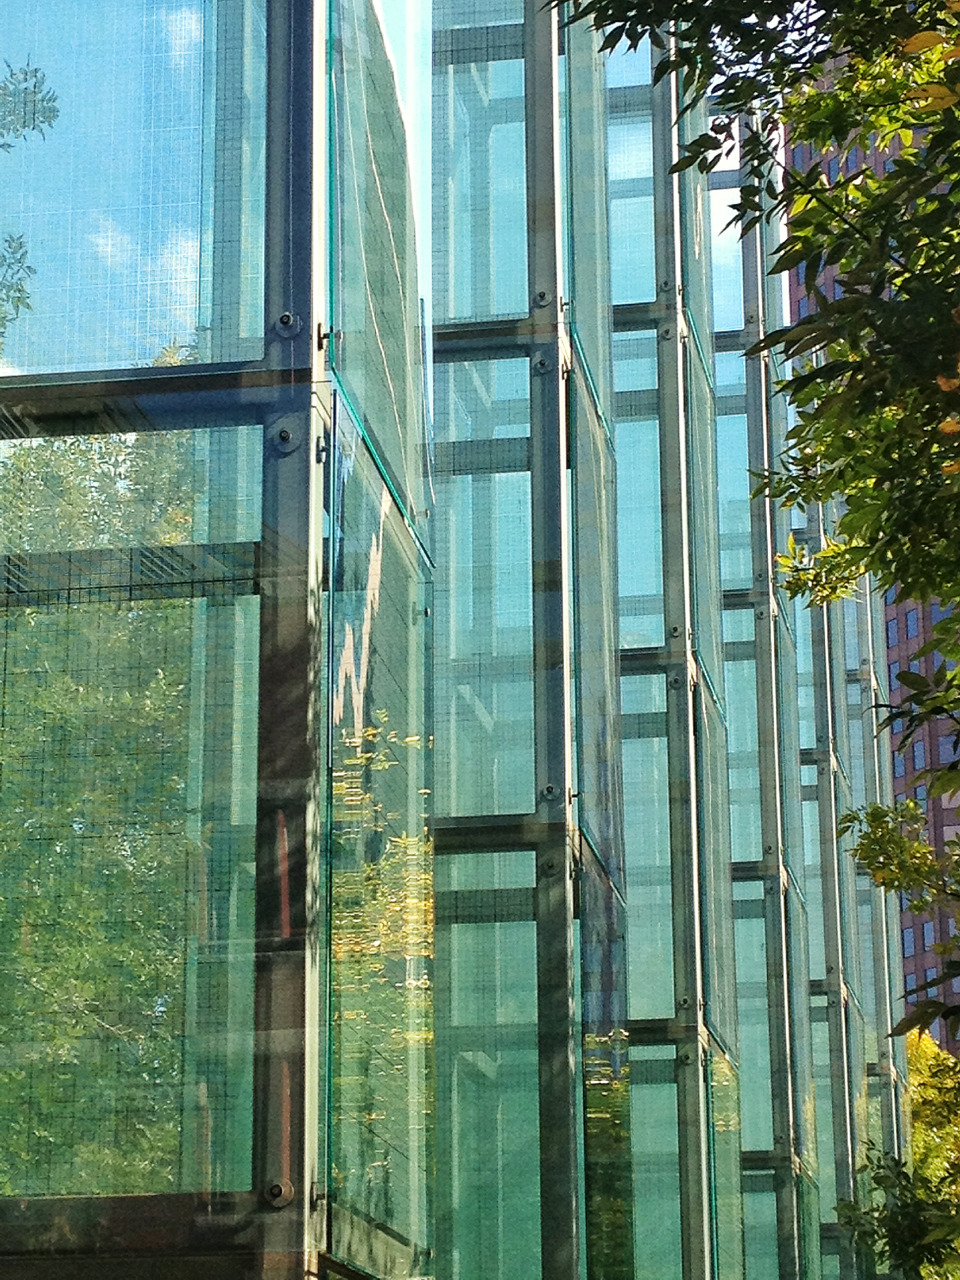 The 6 glass towers of the New England Holocaust Memorial - there are 6 million numbers etched into these.